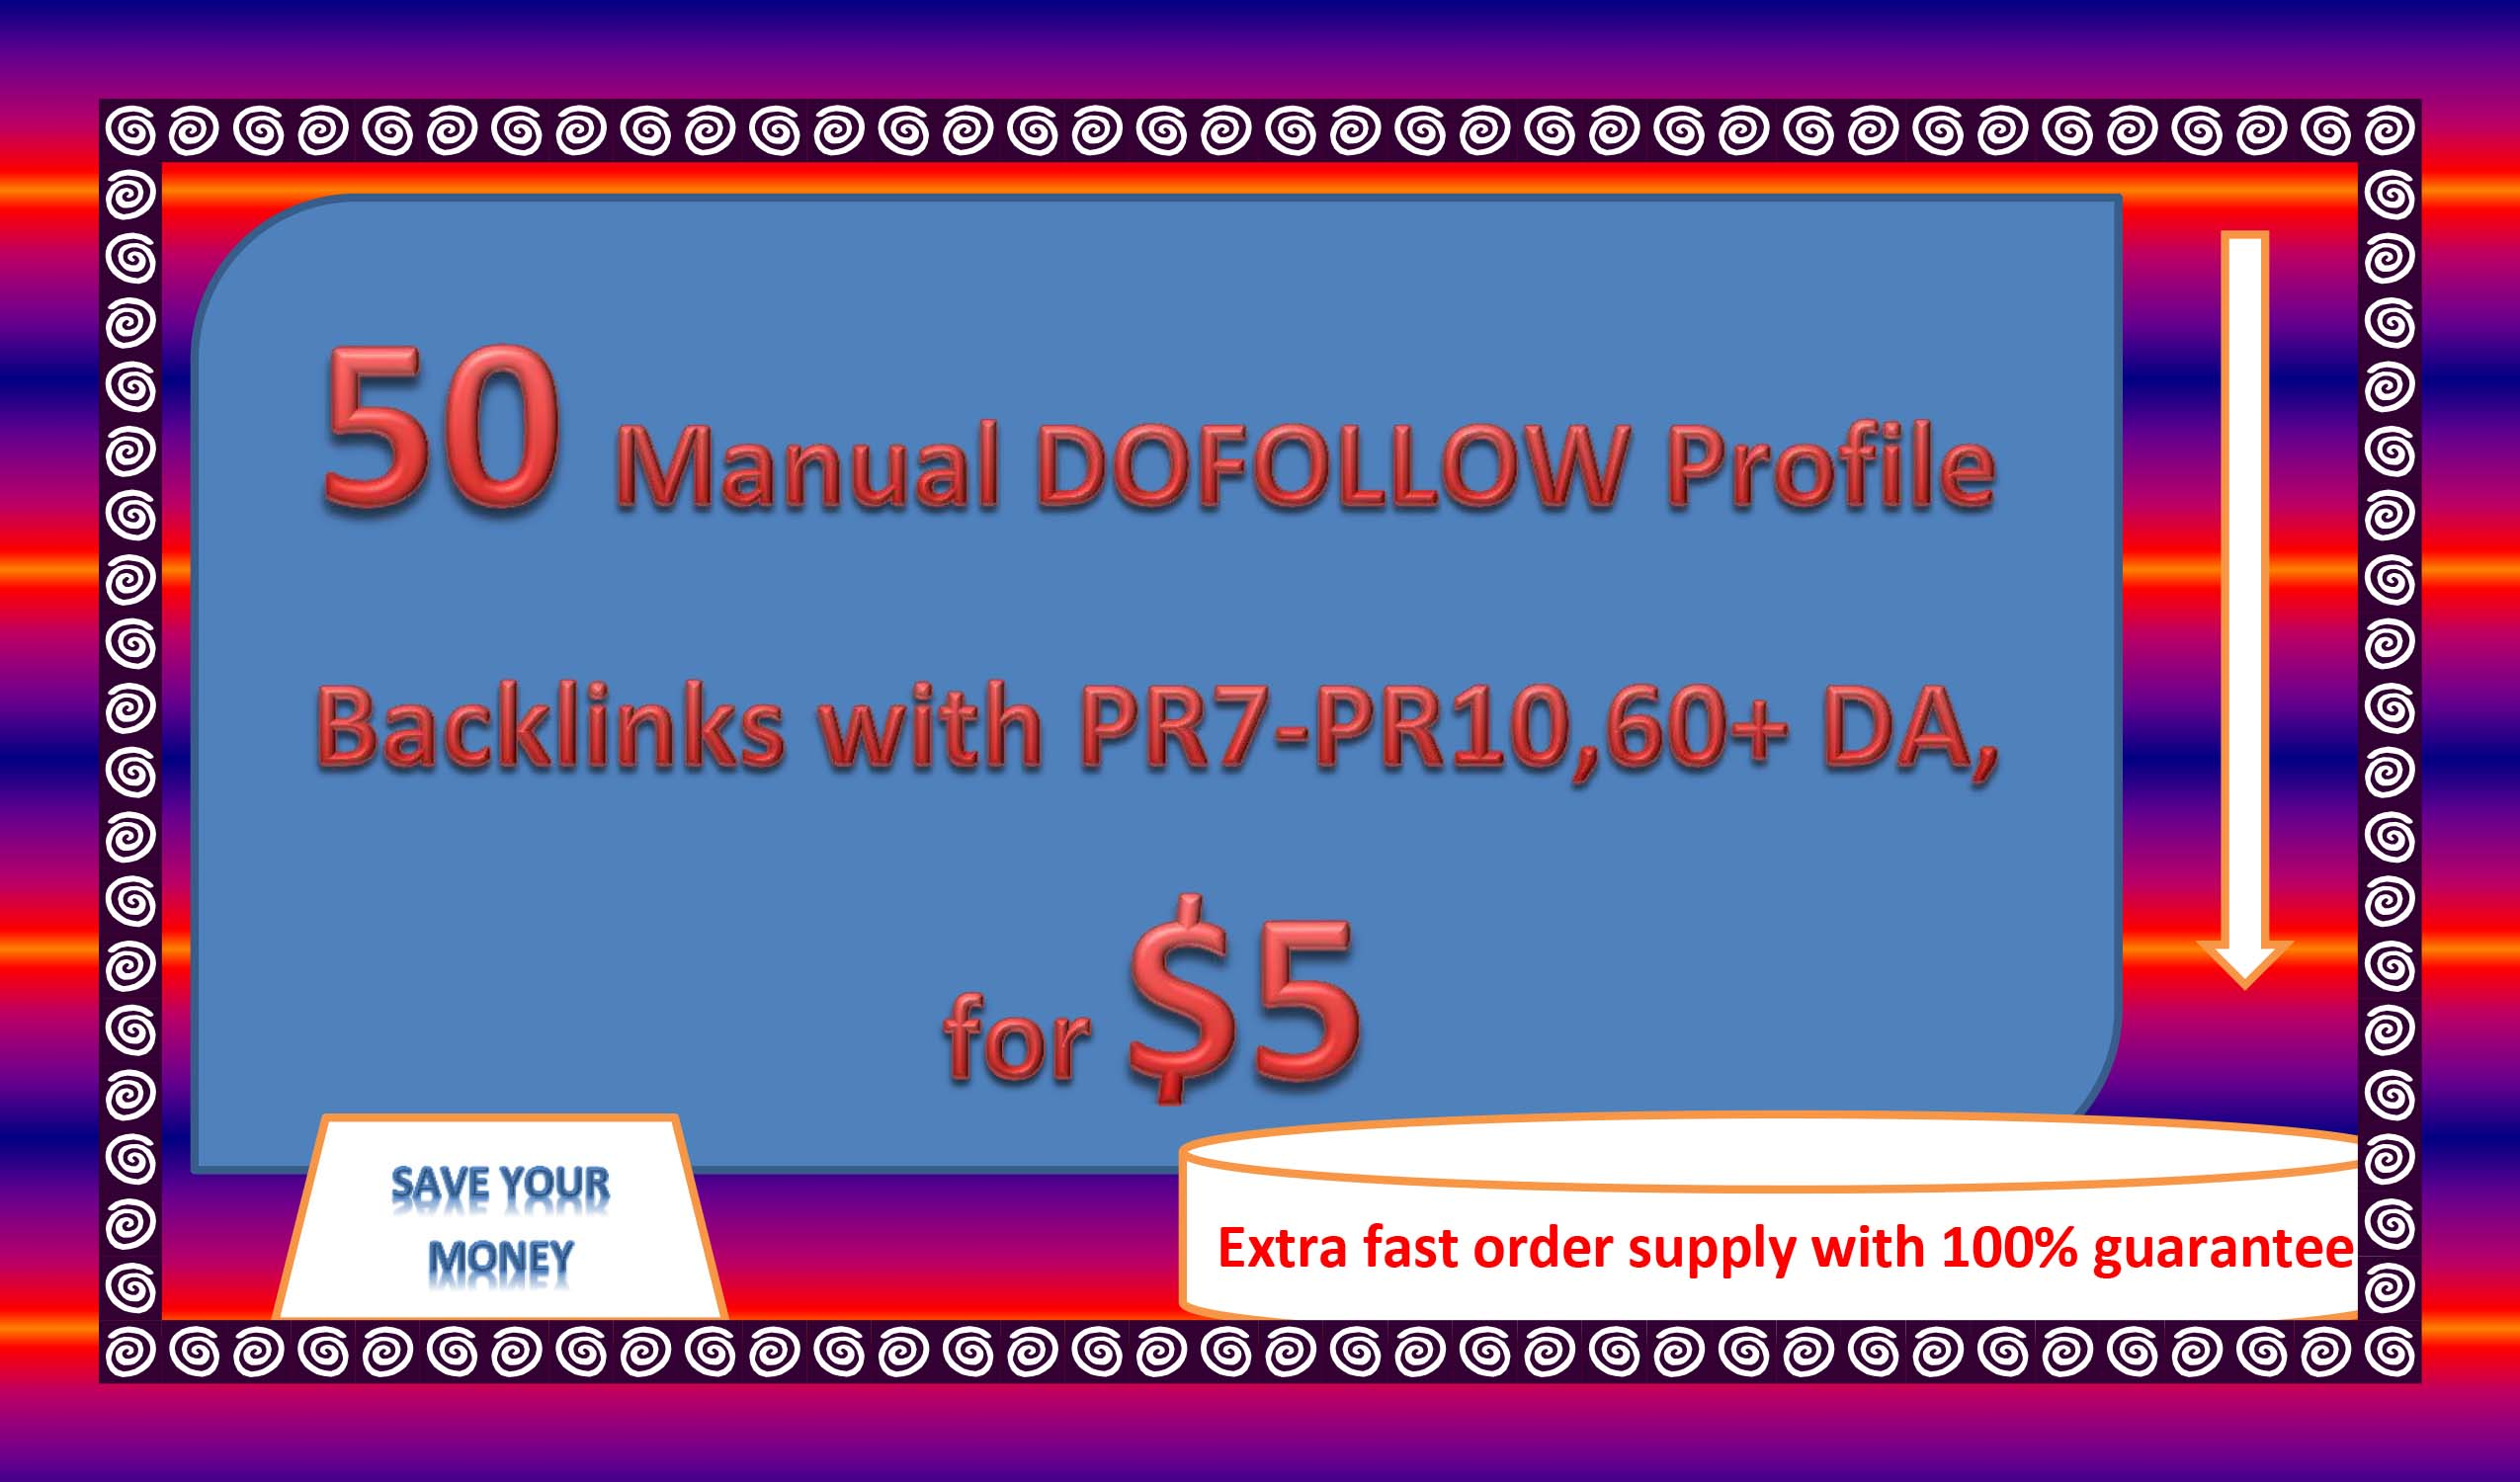 50 Manual DOFOLLOW Profile Backlinks with PR7-PR10,60+ DA